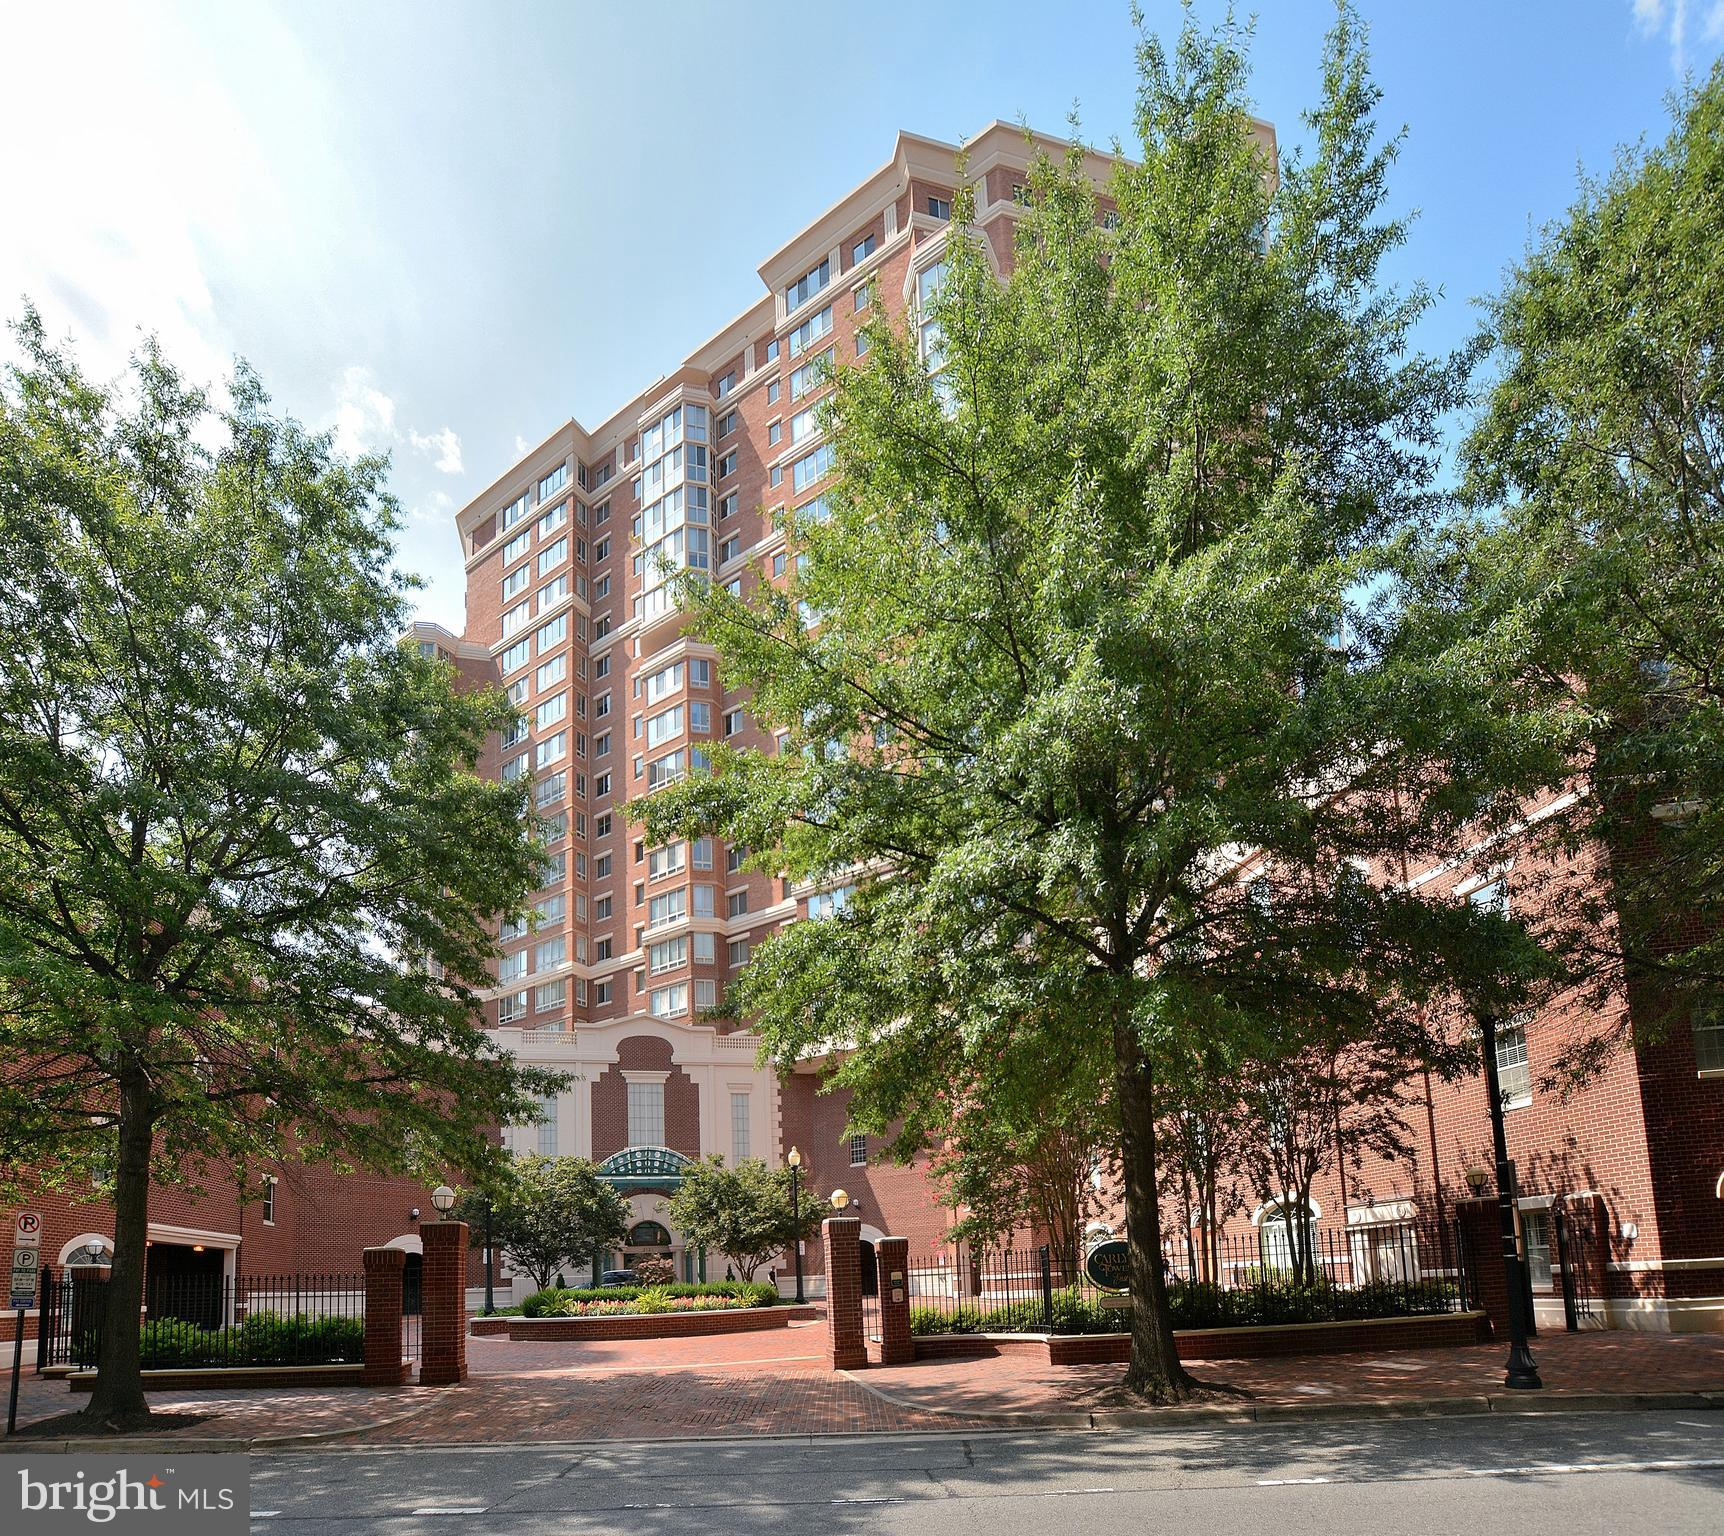 1 of only 6 TERRACE condos at Carlyle Towers! Wood floors, fresh paint, popcorn ceilings             scraped, new carpet - all  creating a fresh pallet  for you to make this Condo your own!  2 gar         spaces. 1-44 and 1-45.  Access to your HUGE         terrace from the MBR and the LR.